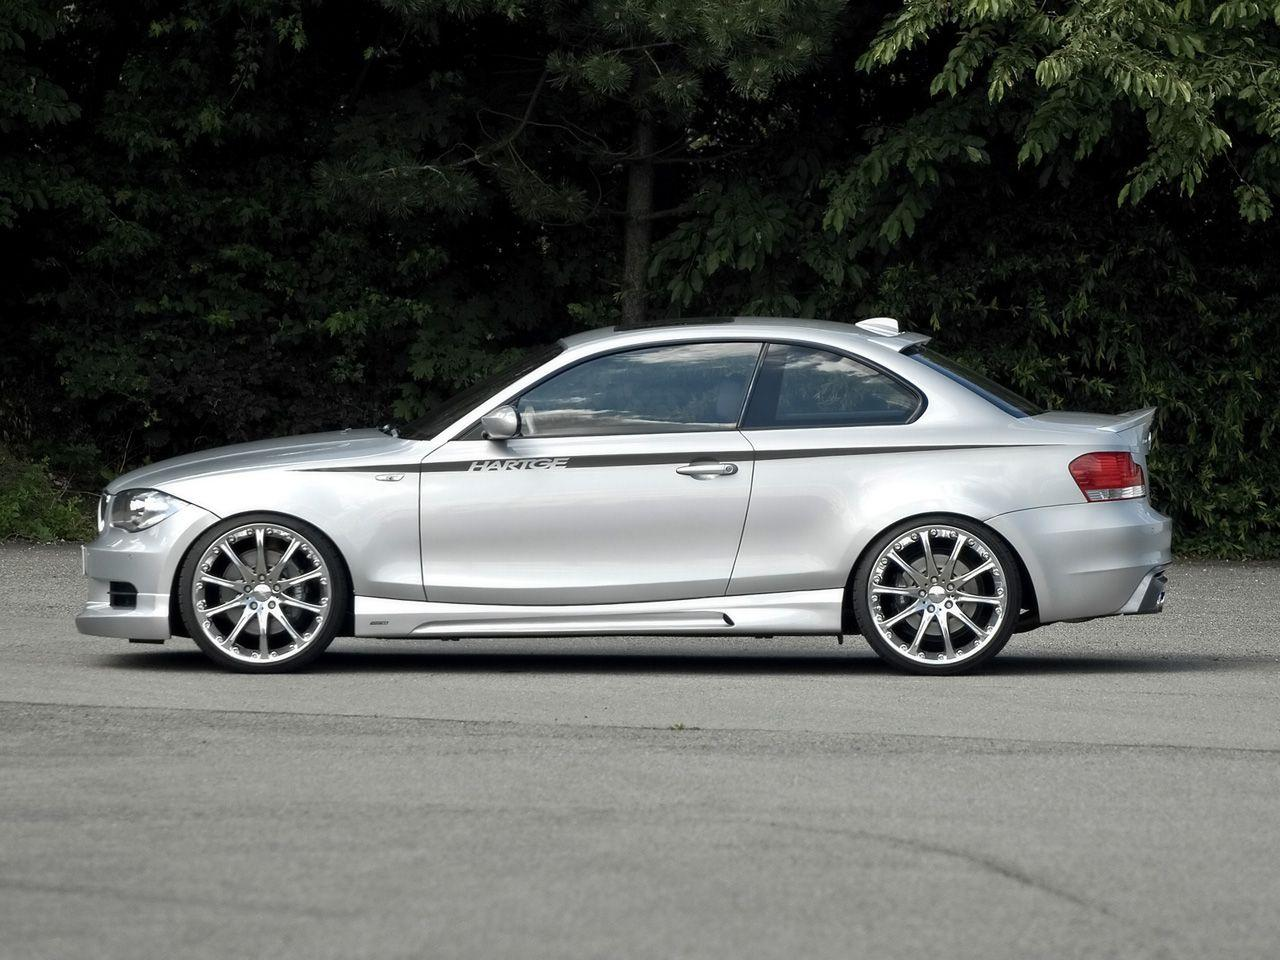 AUTO CARS ZONES: Bmw 135i Wallpapers